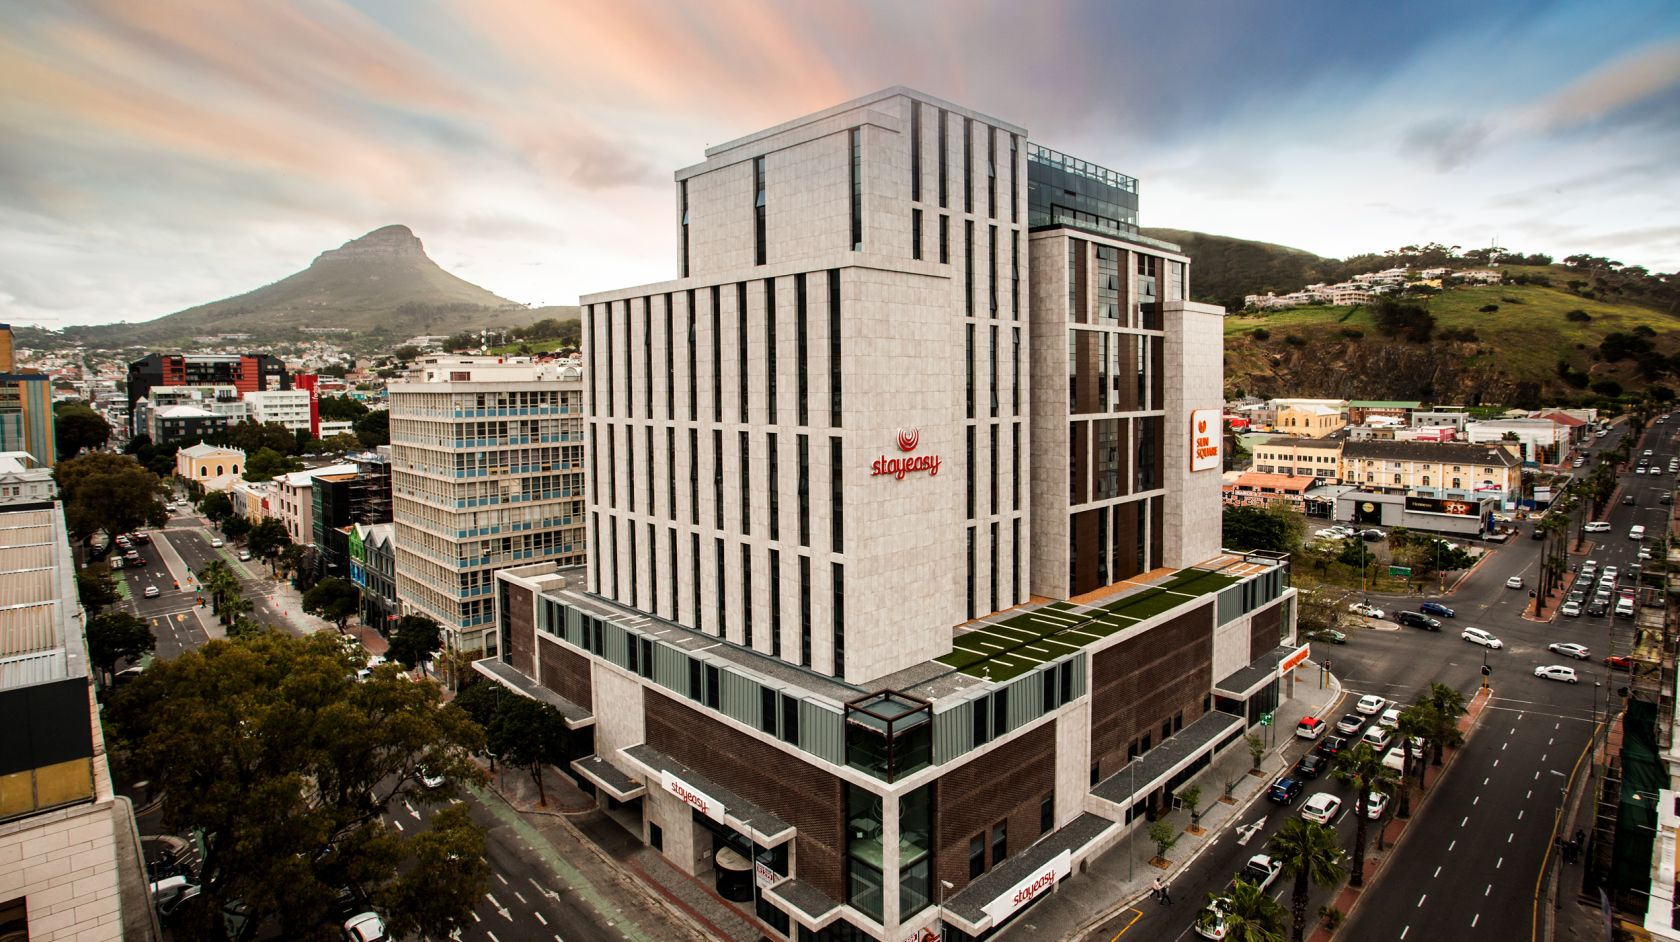 vraiment pas cher 100% d'origine nouveau concept Cape Town City Bowl Hotel | StayEasy Cape Town City Bowl